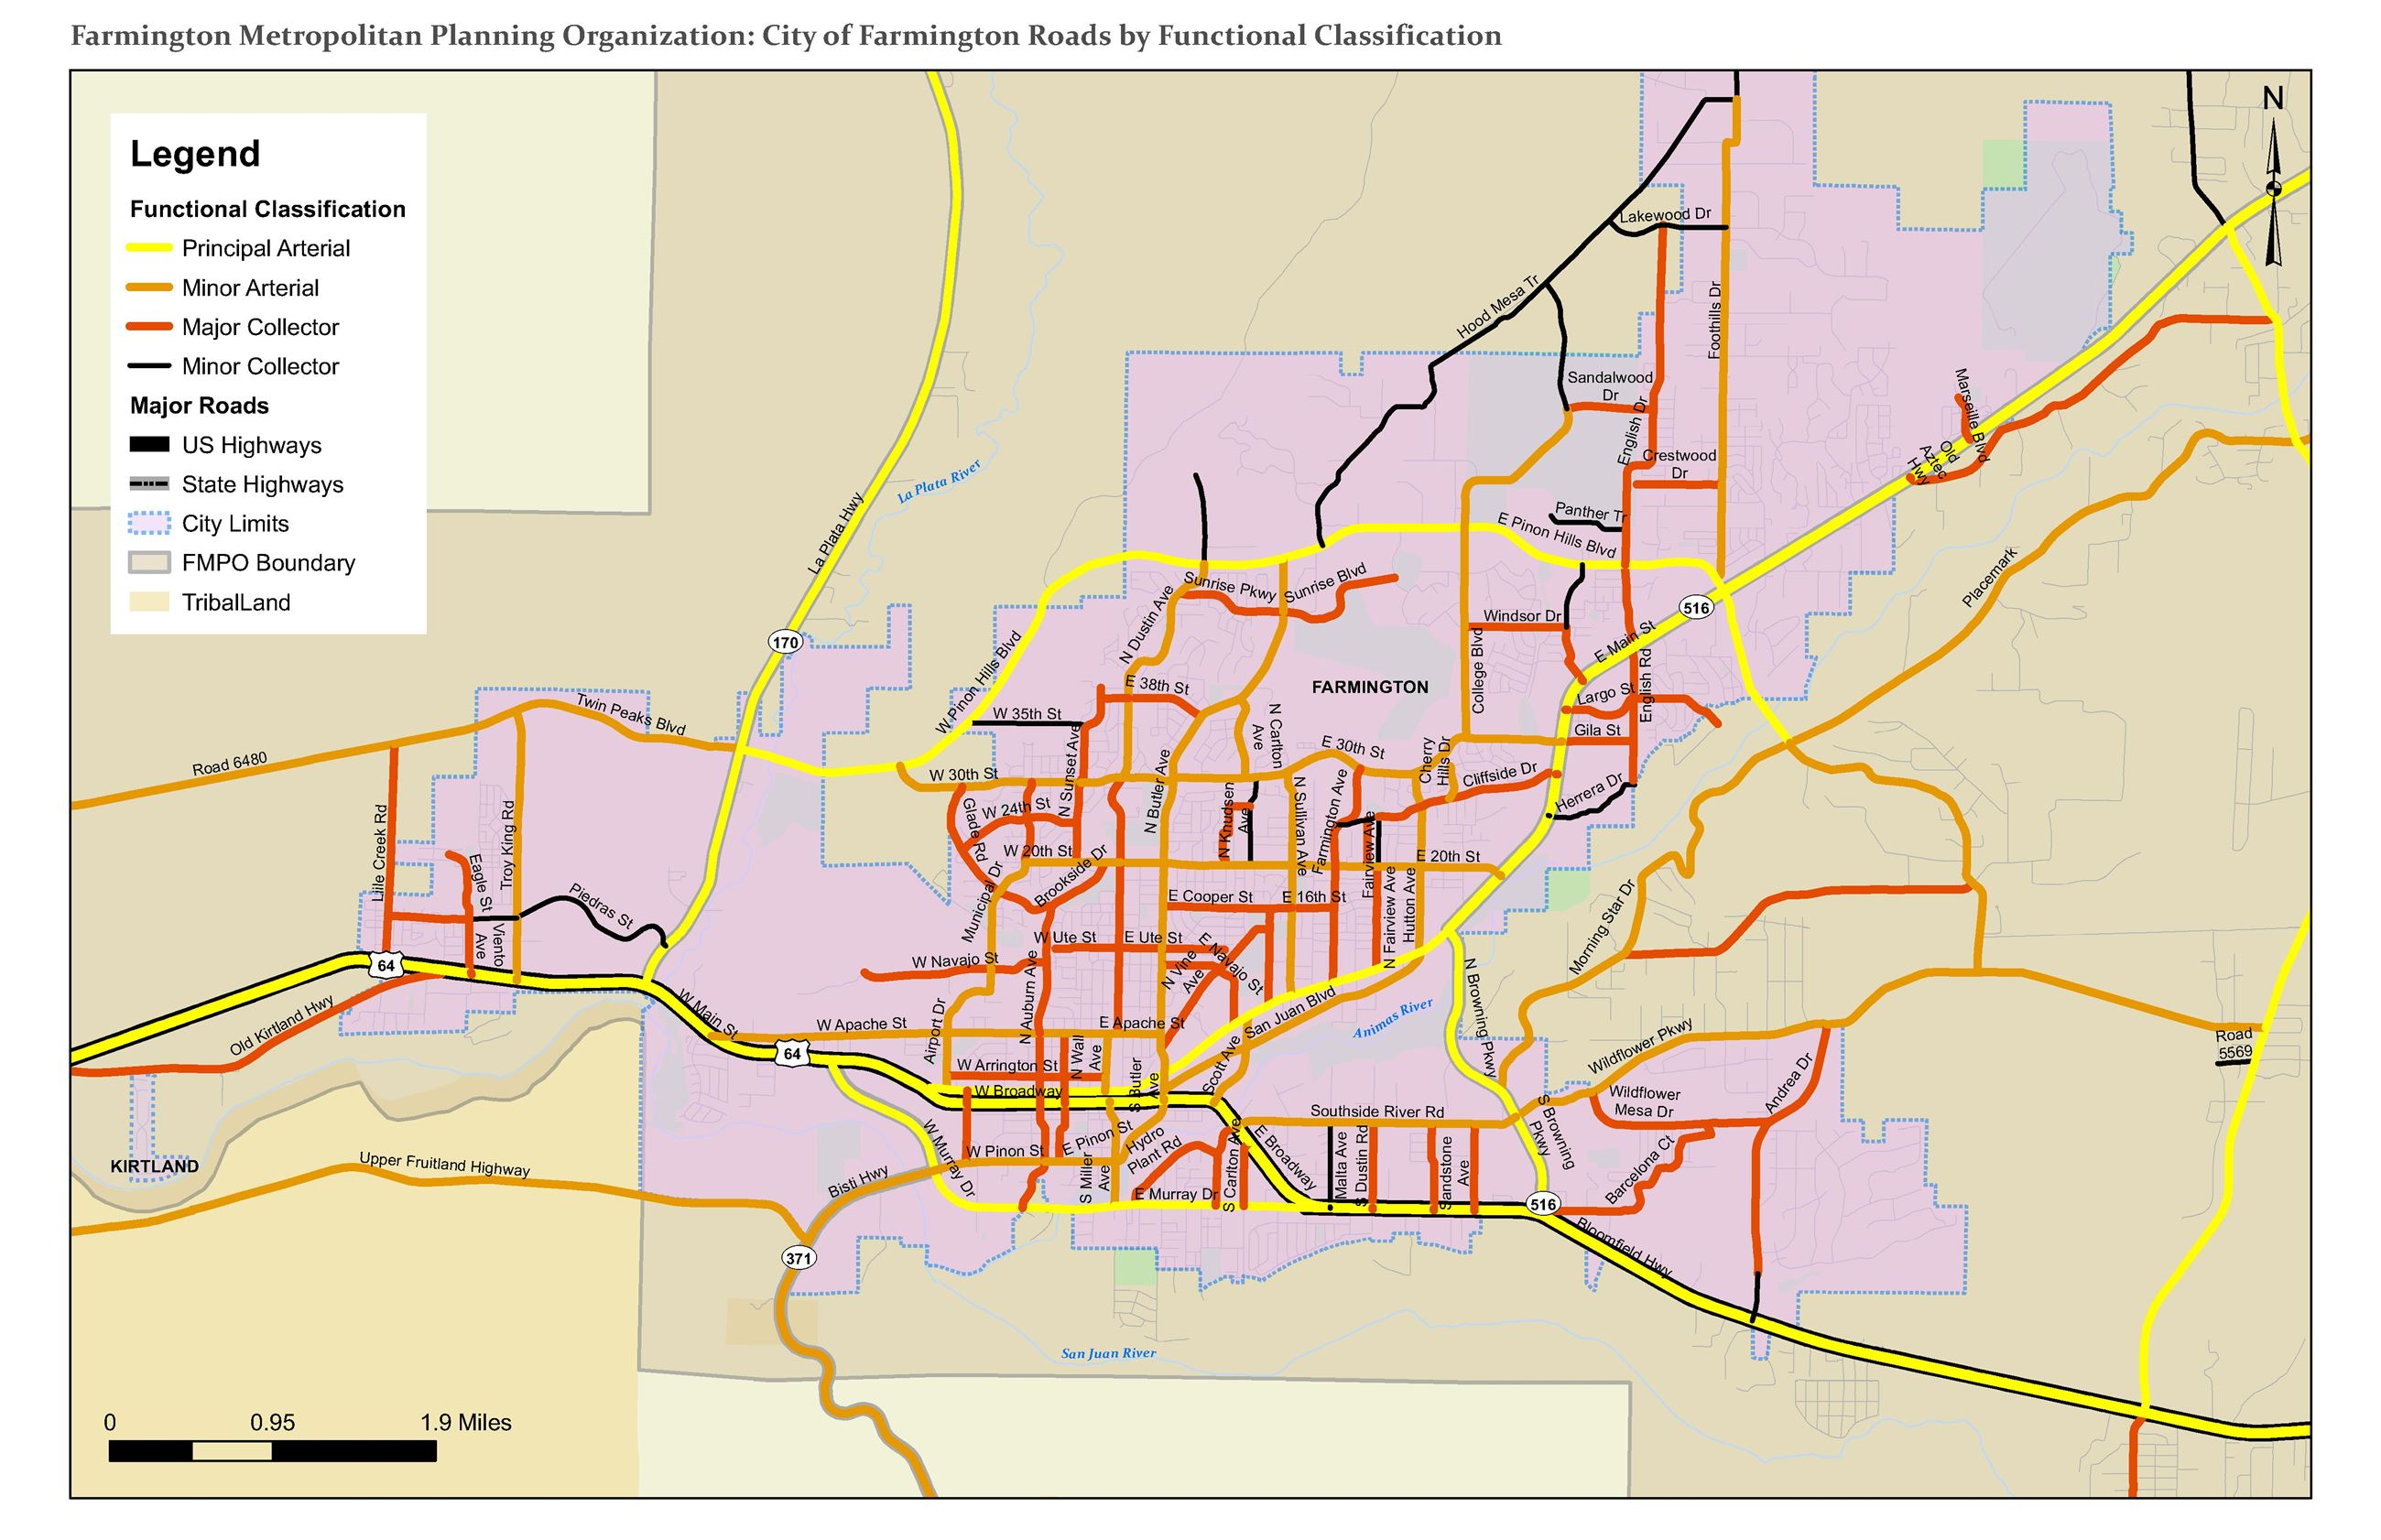 Map - City of Farmington Roads by Funcational Classification Opens in new window